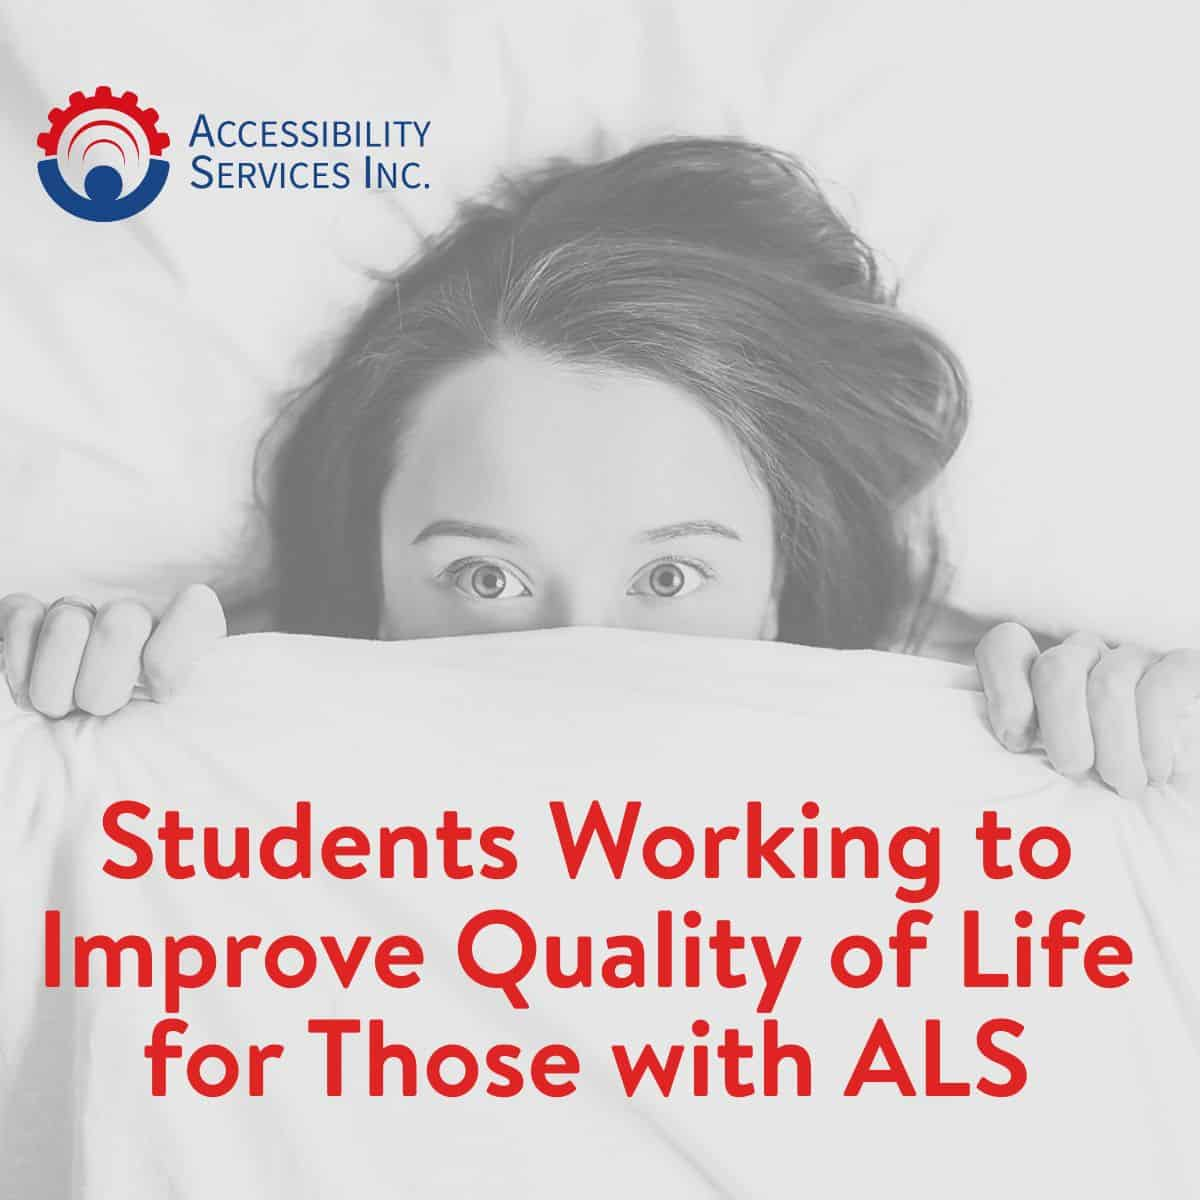 Students Working to Improve Quality of Life for Those with ALS